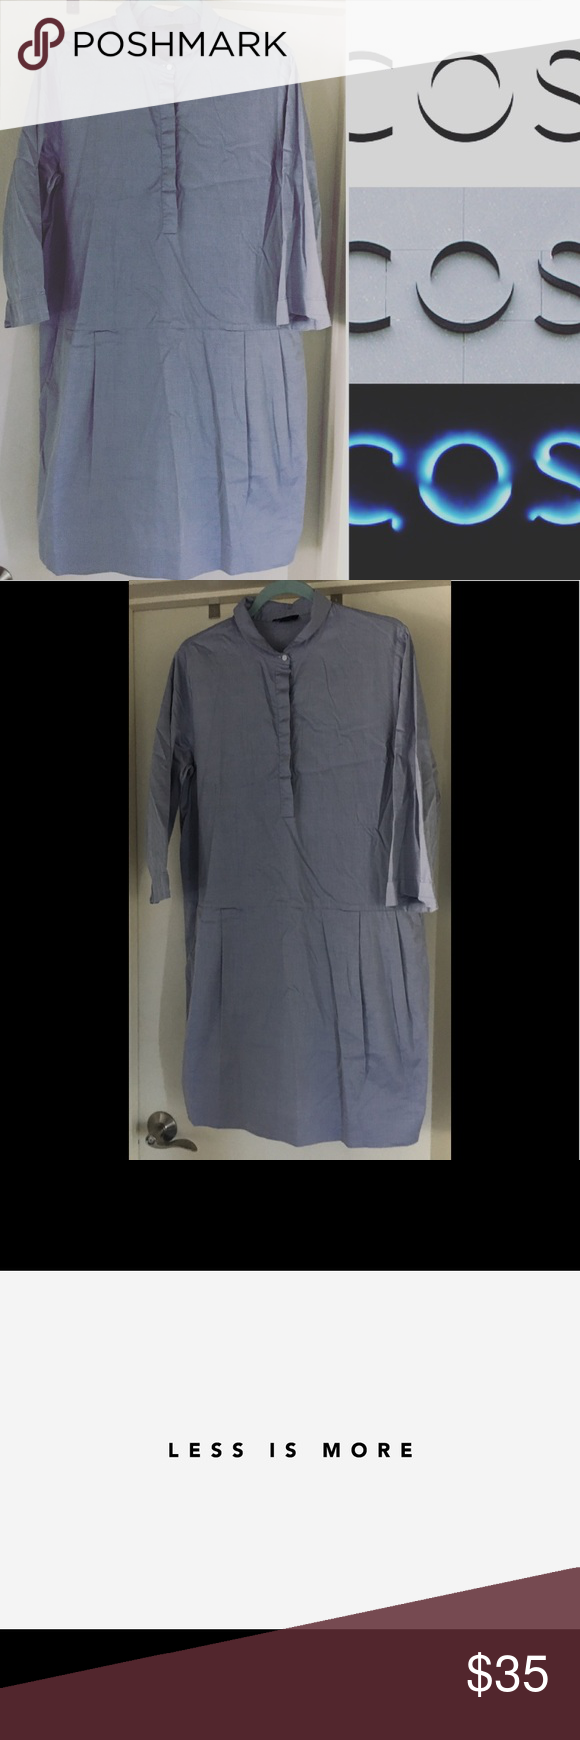 42f4e274c31f7 COS MINIMALIST BLUE DRESS SZ US 12 NWOT NWOT COS dress. SZ 12 190 ...